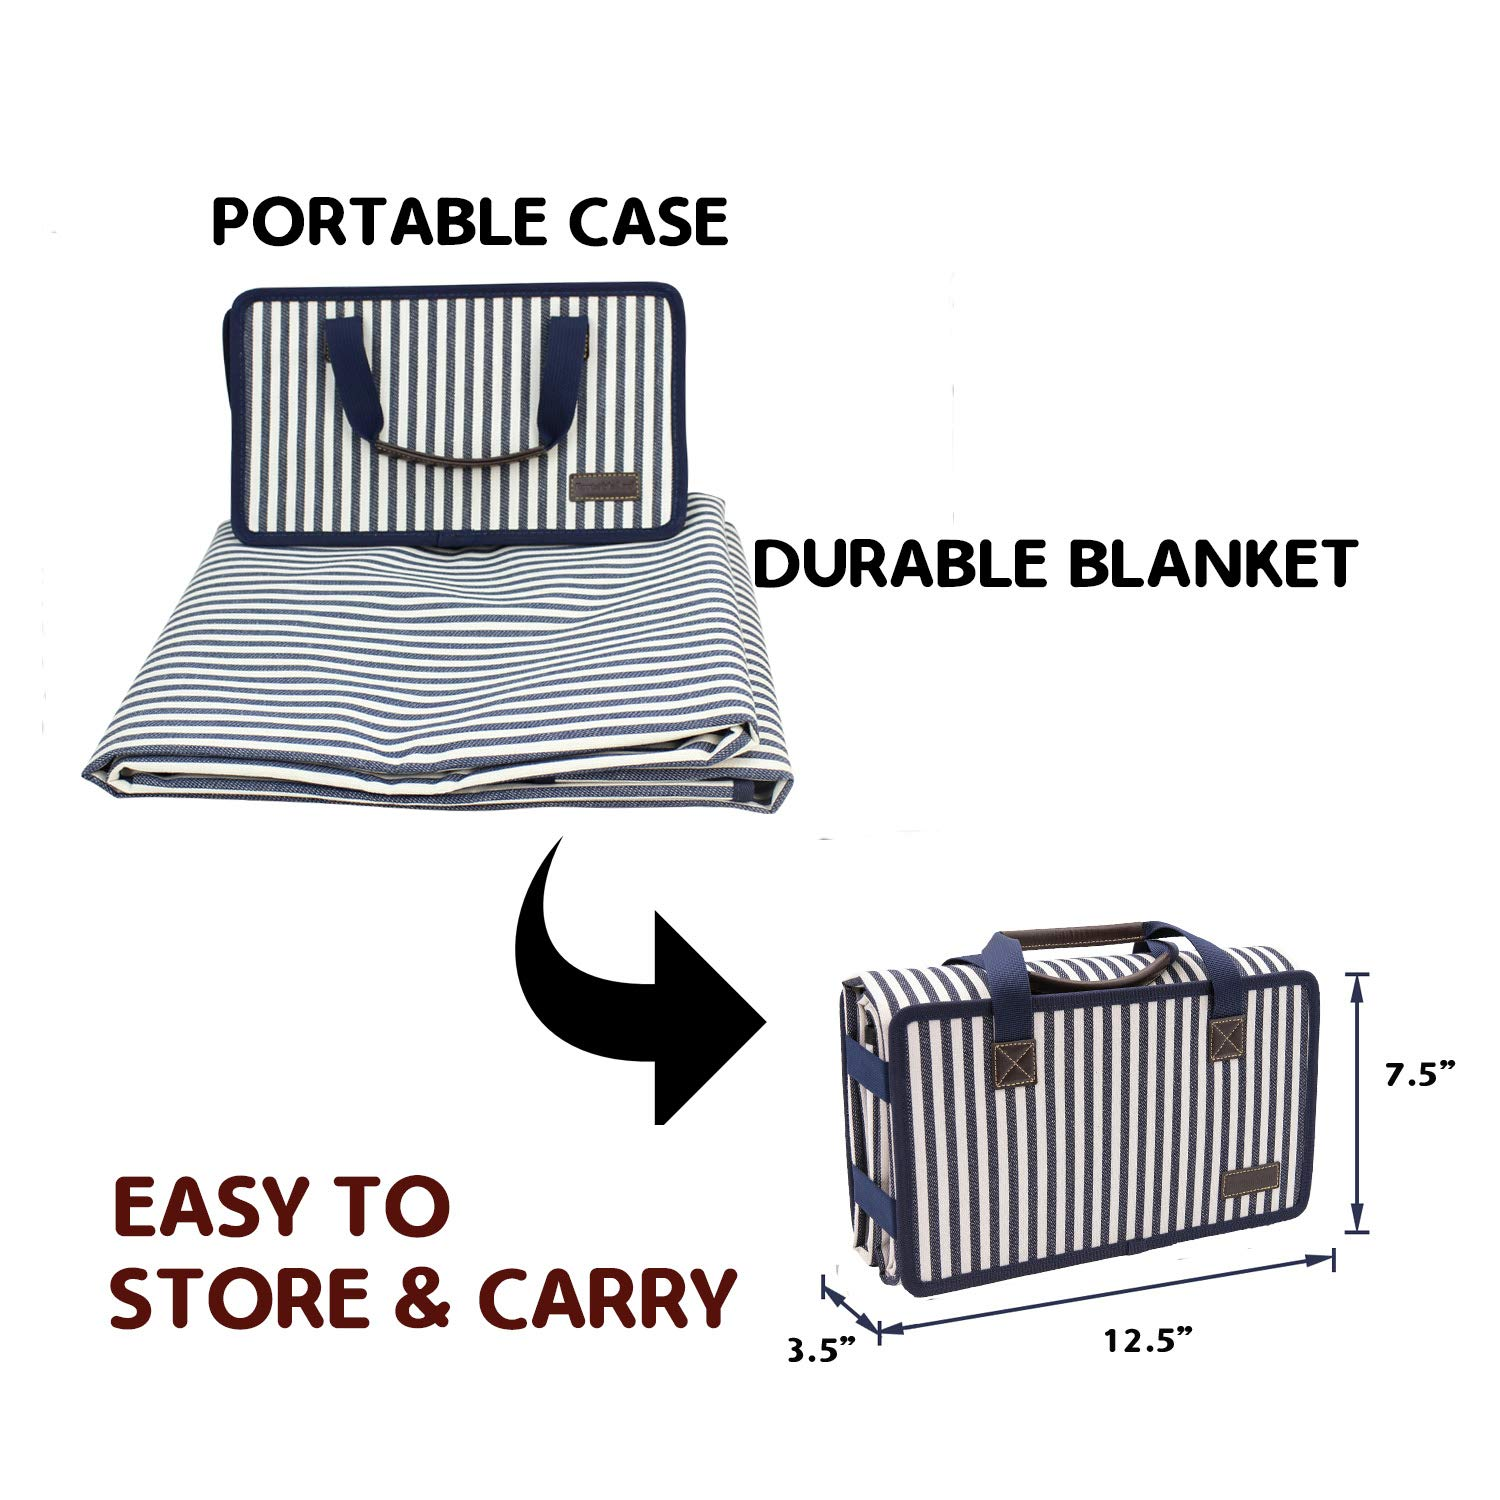 Black and White Striped PortableAnd Extra Large Picnic /& Outdoor Blanket for Water-Resistant Handy Mat Tote Spring Summer Great for the Beach,Camping on Grass Waterproof Sandproof